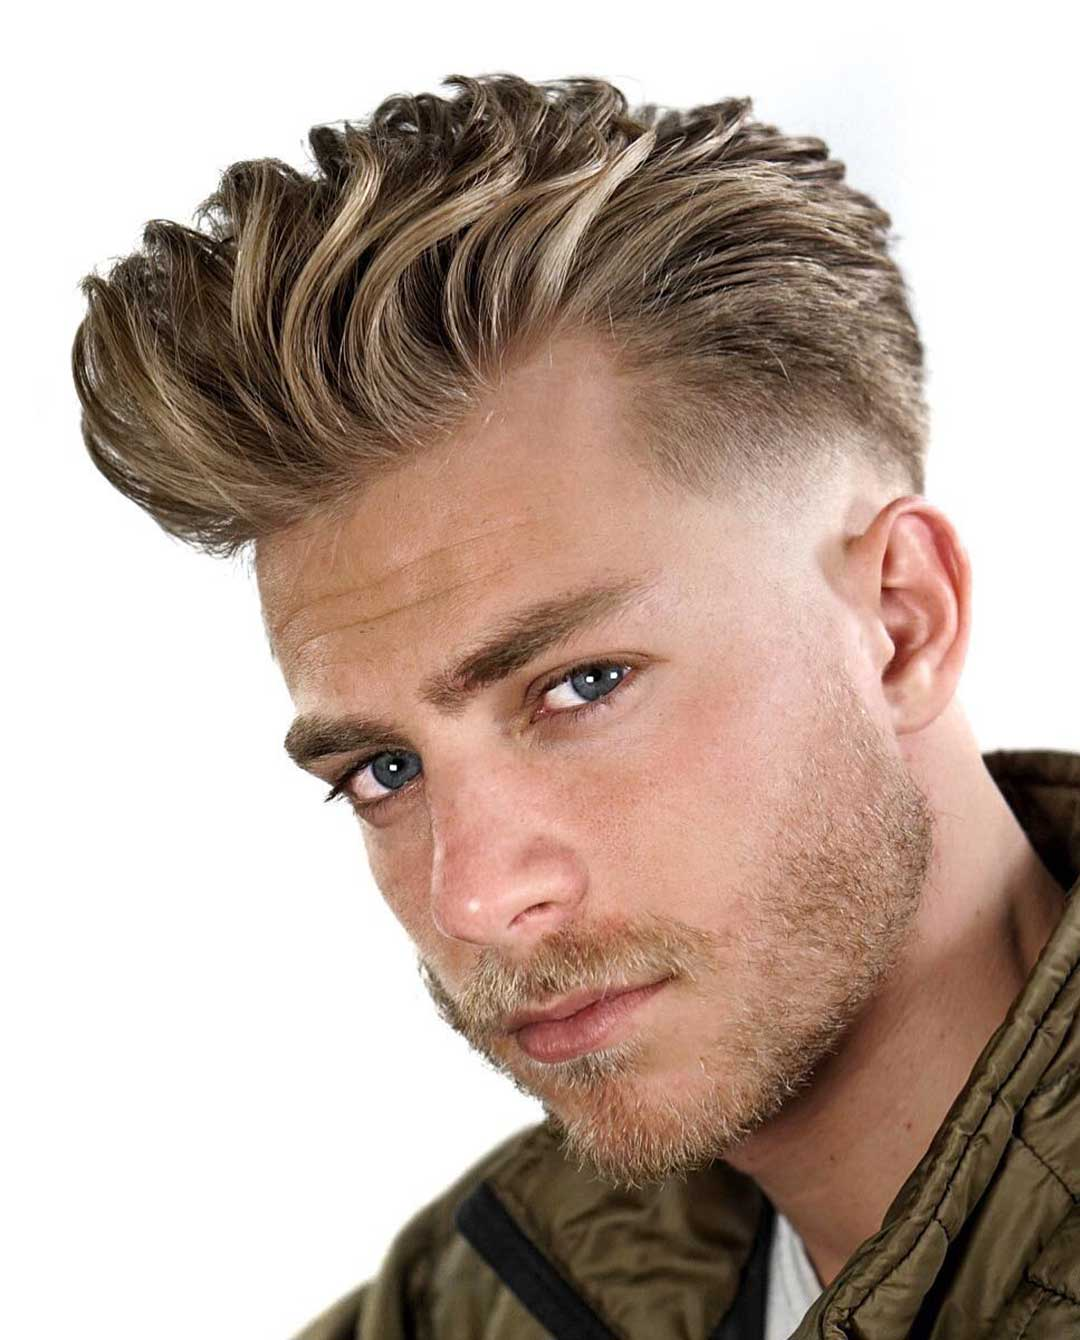 The High Textured Coif